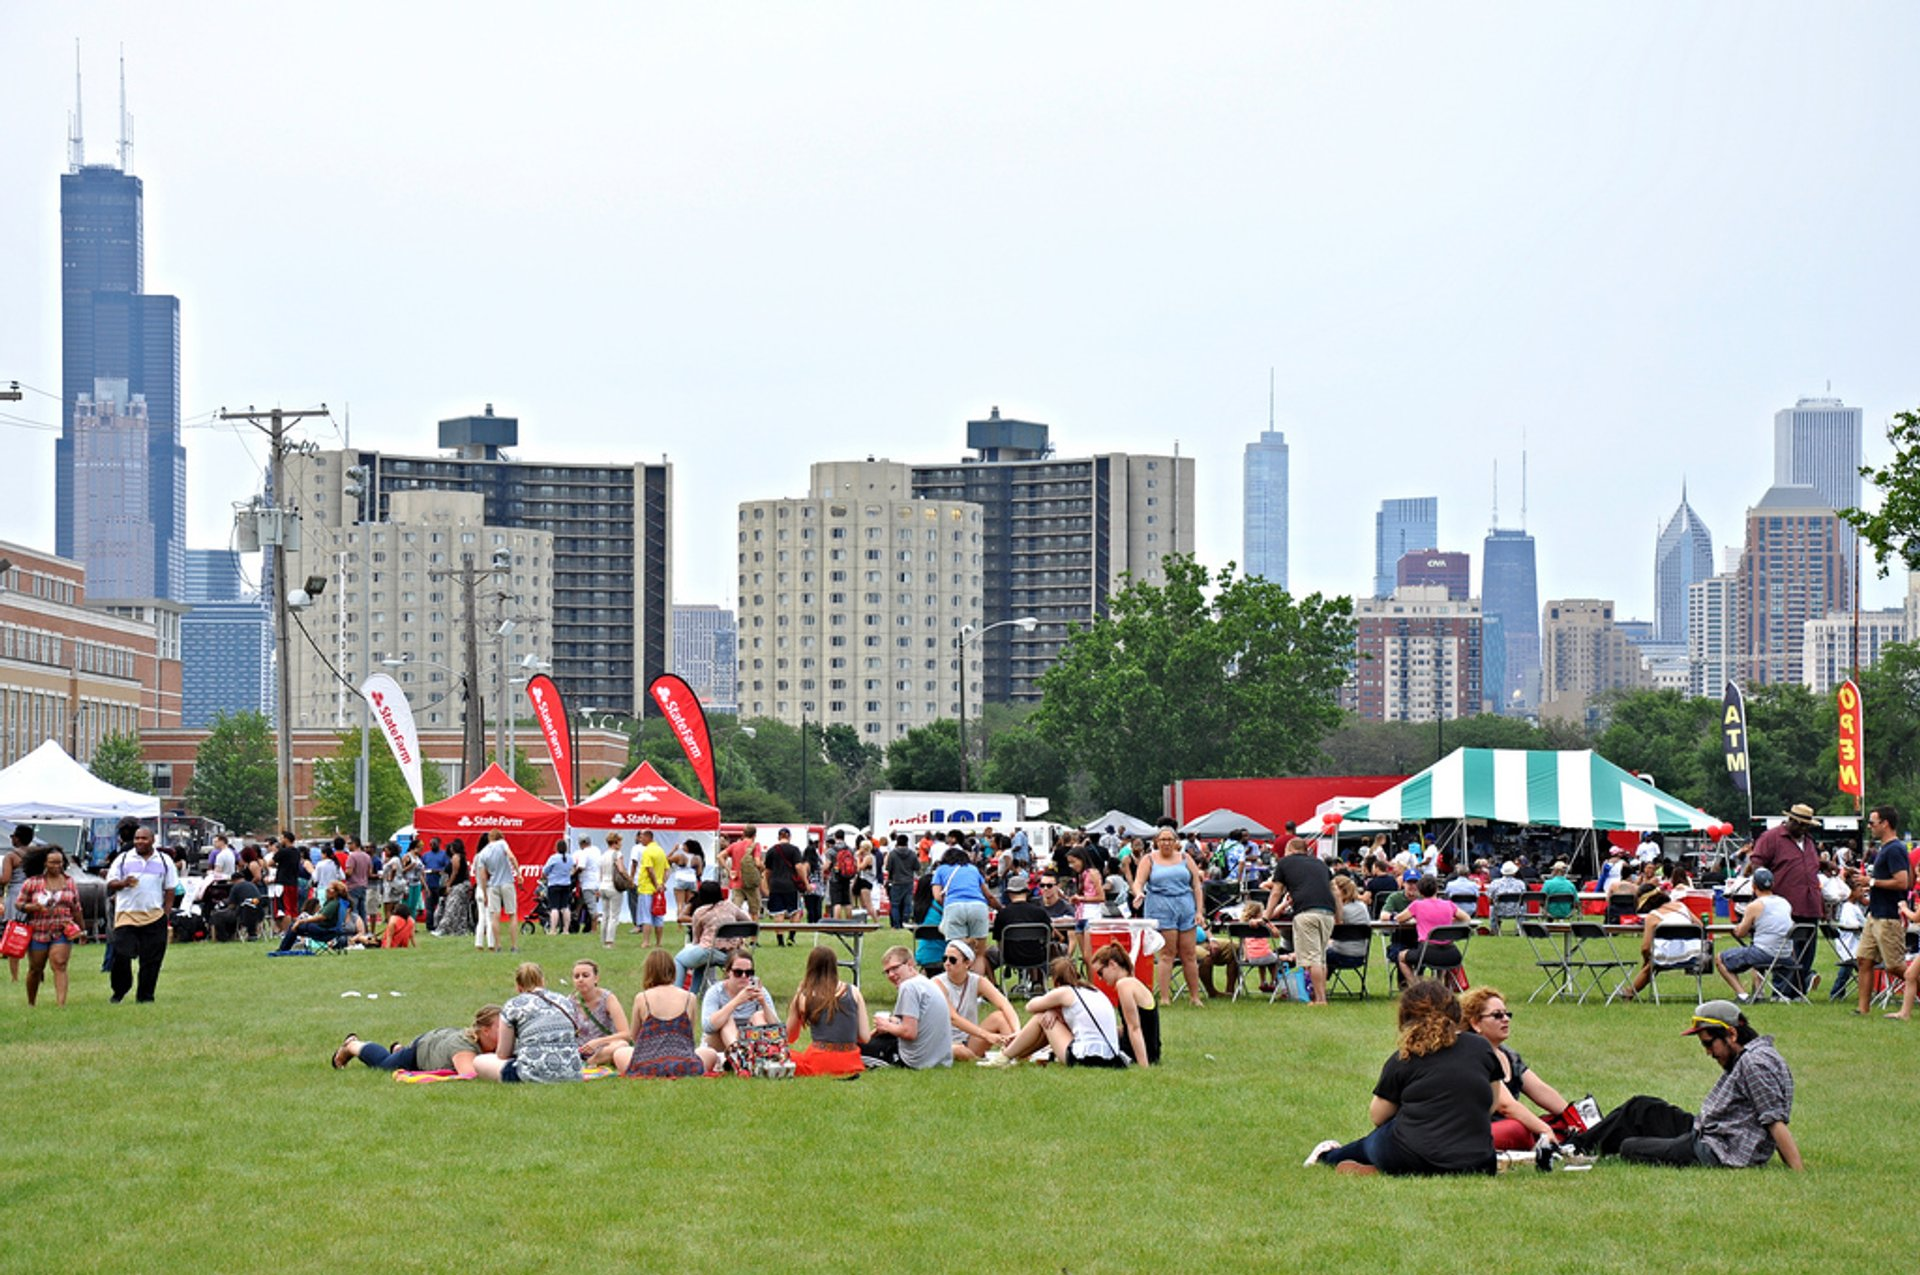 Chicago Food Truck Festival in Chicago - Best Season 2020